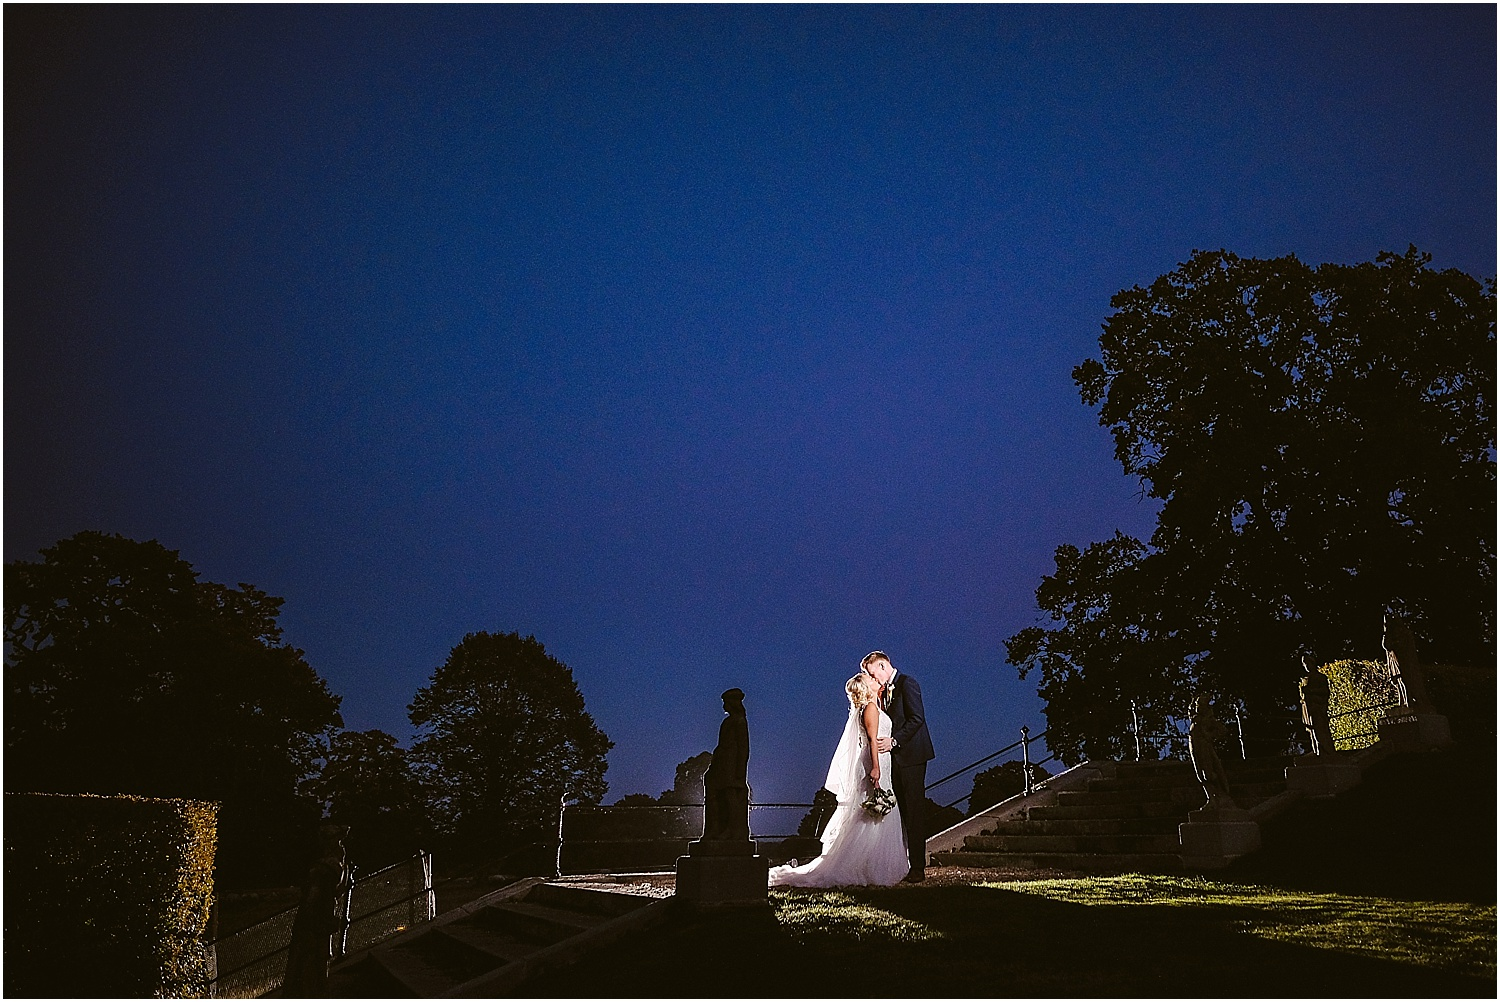 Lartington Hall weddings by www.2tonephotography.co.uk 113.jpg